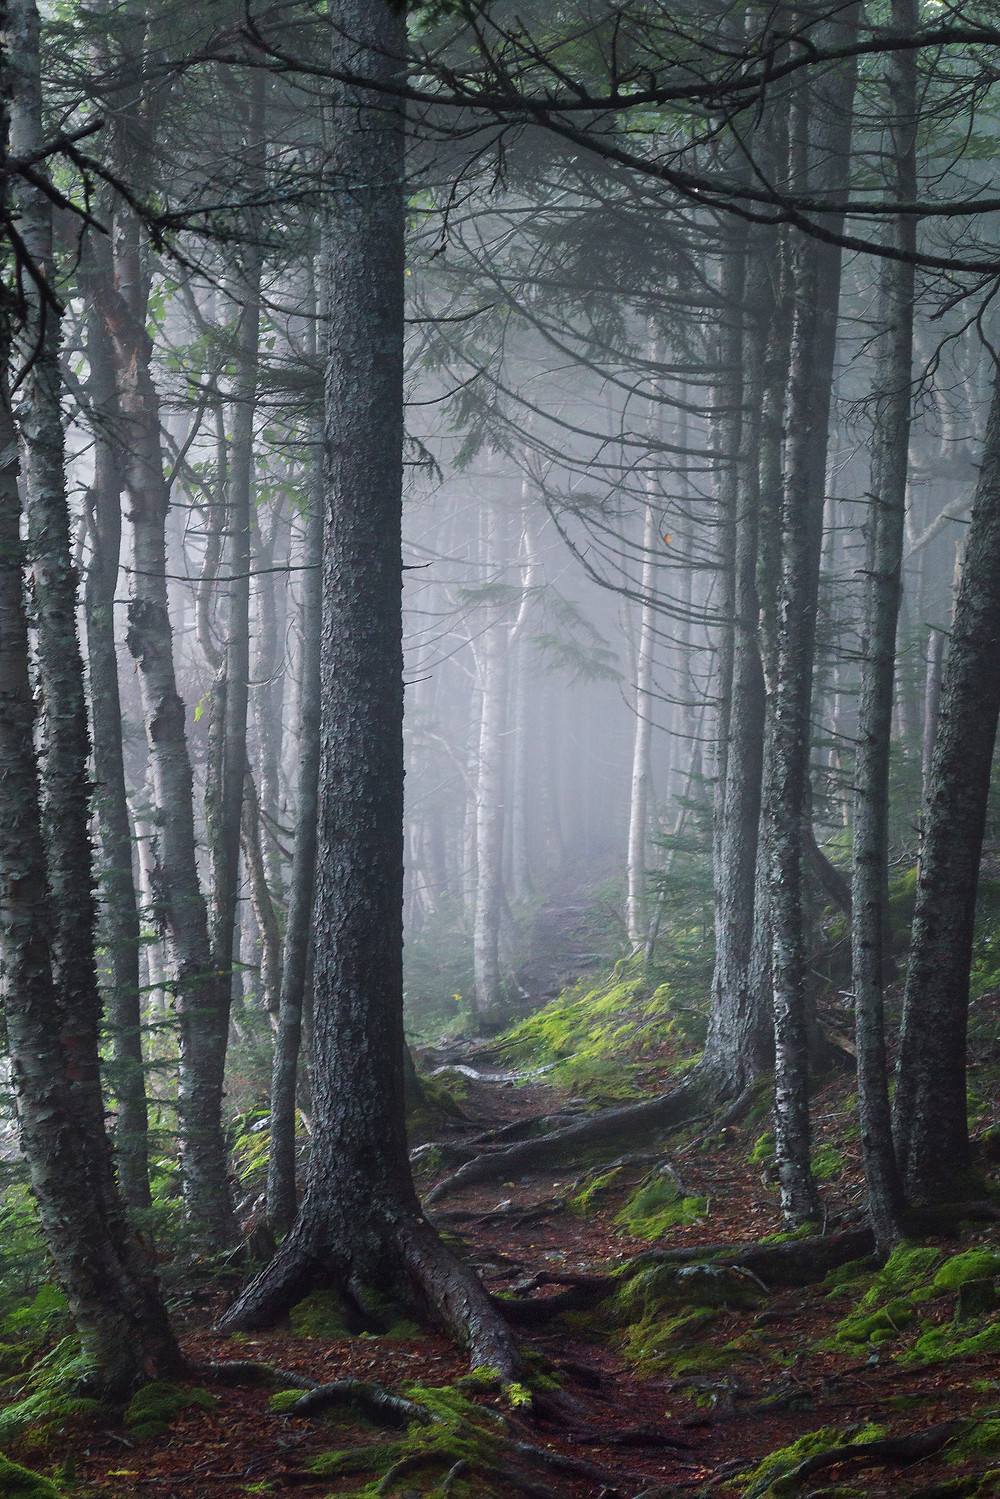 Fog along a path in the forest.